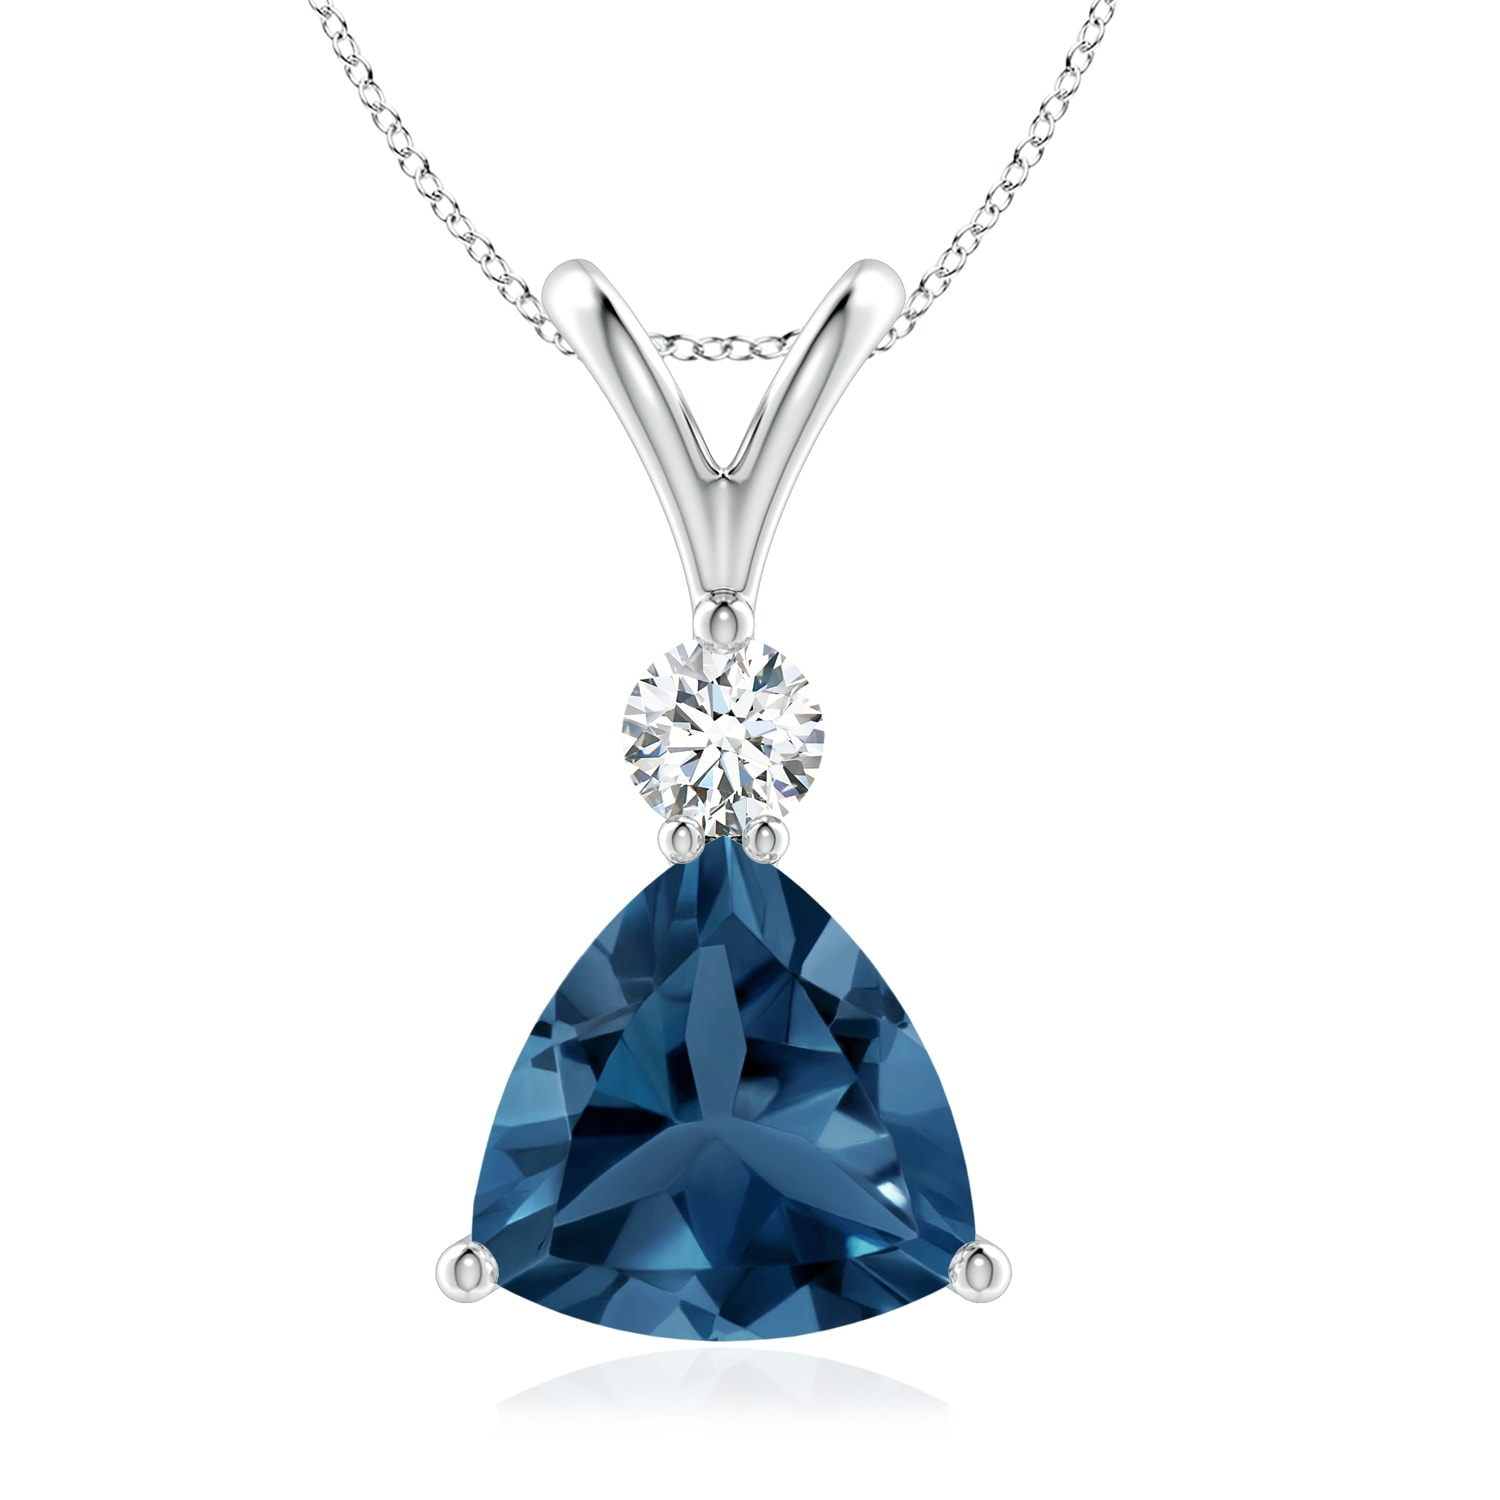 Lovely 14k Trillion Shaped Blue Topaz and Diamond Necklace with 18 Chain Weighing 2.3 grams